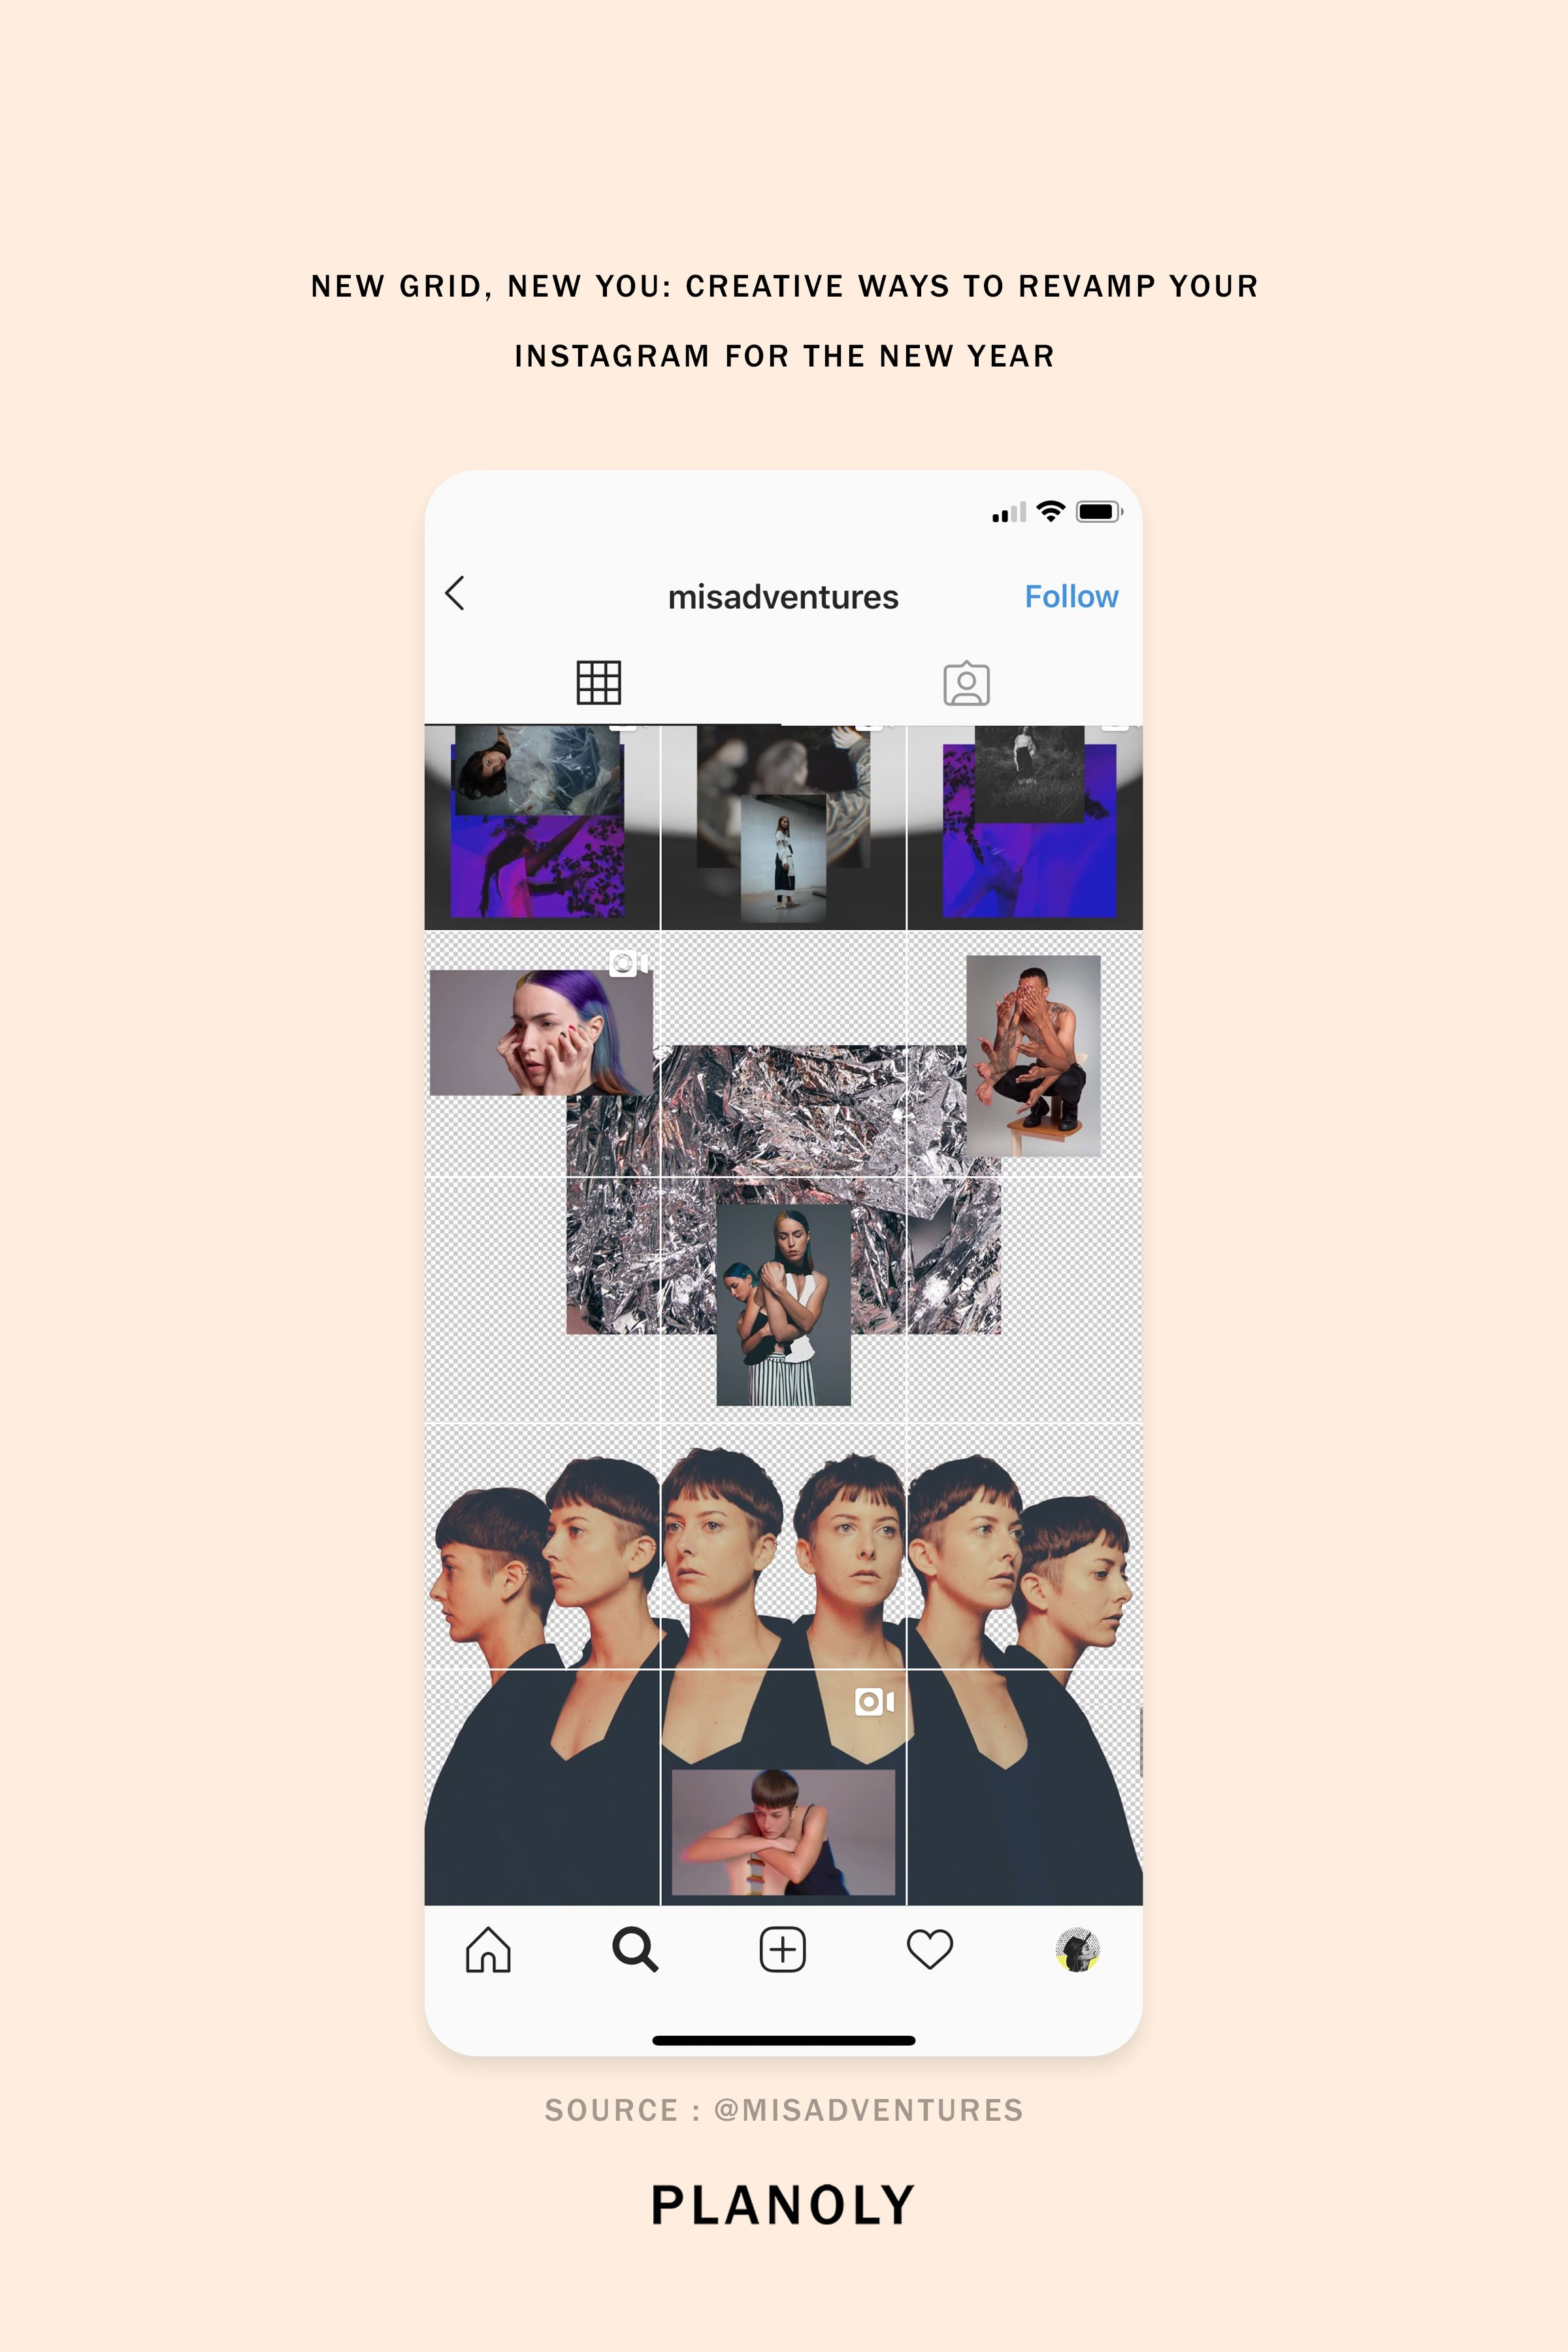 New Grid, New You: Creative Ways to Revamp Your Instagram Grid in the New Year